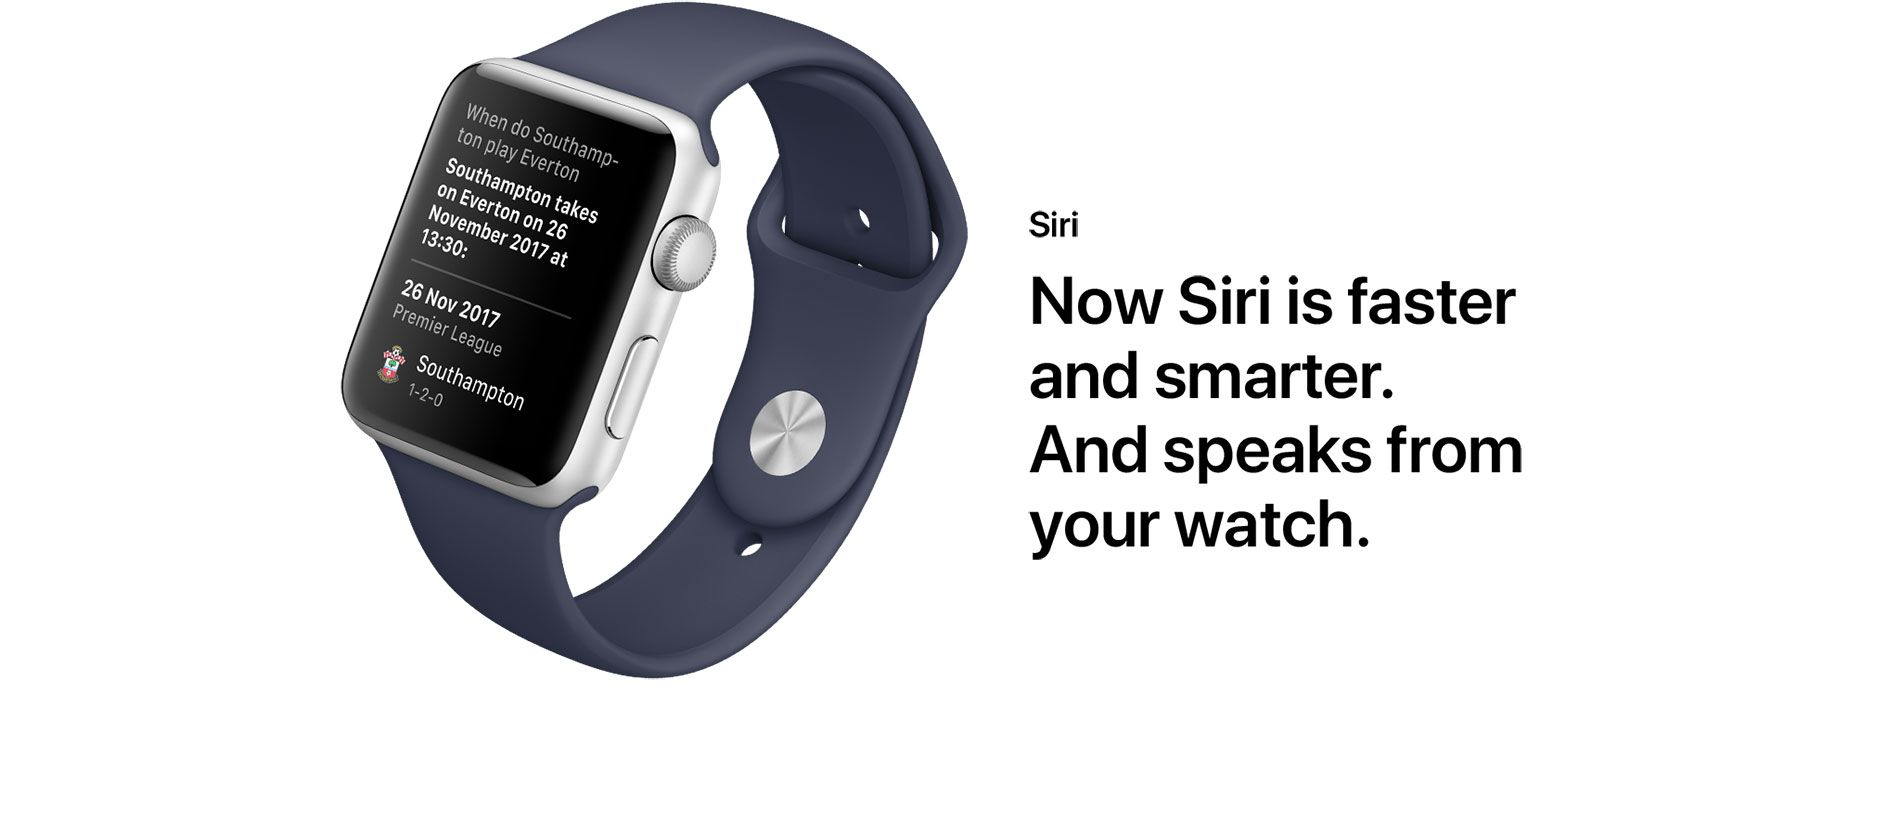 Siri - Now Siri is faster and smarter. And speaks from your watch.